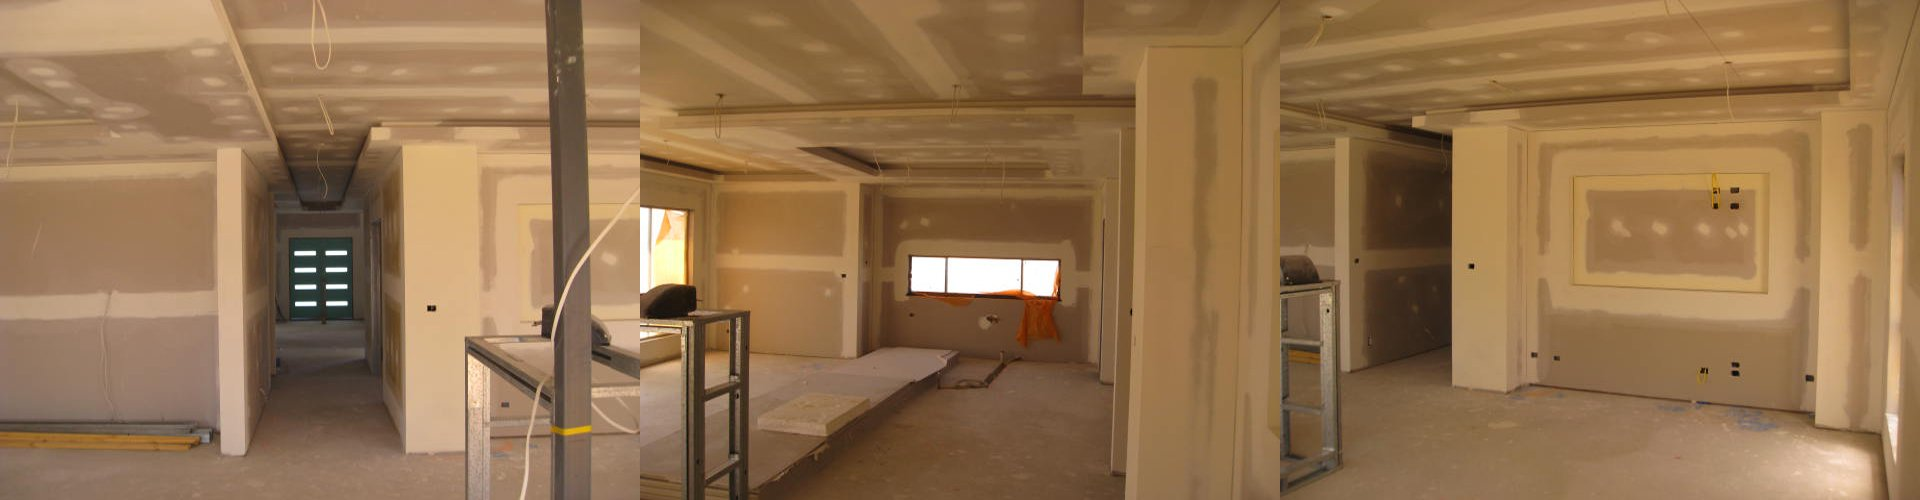 commercial plasterers